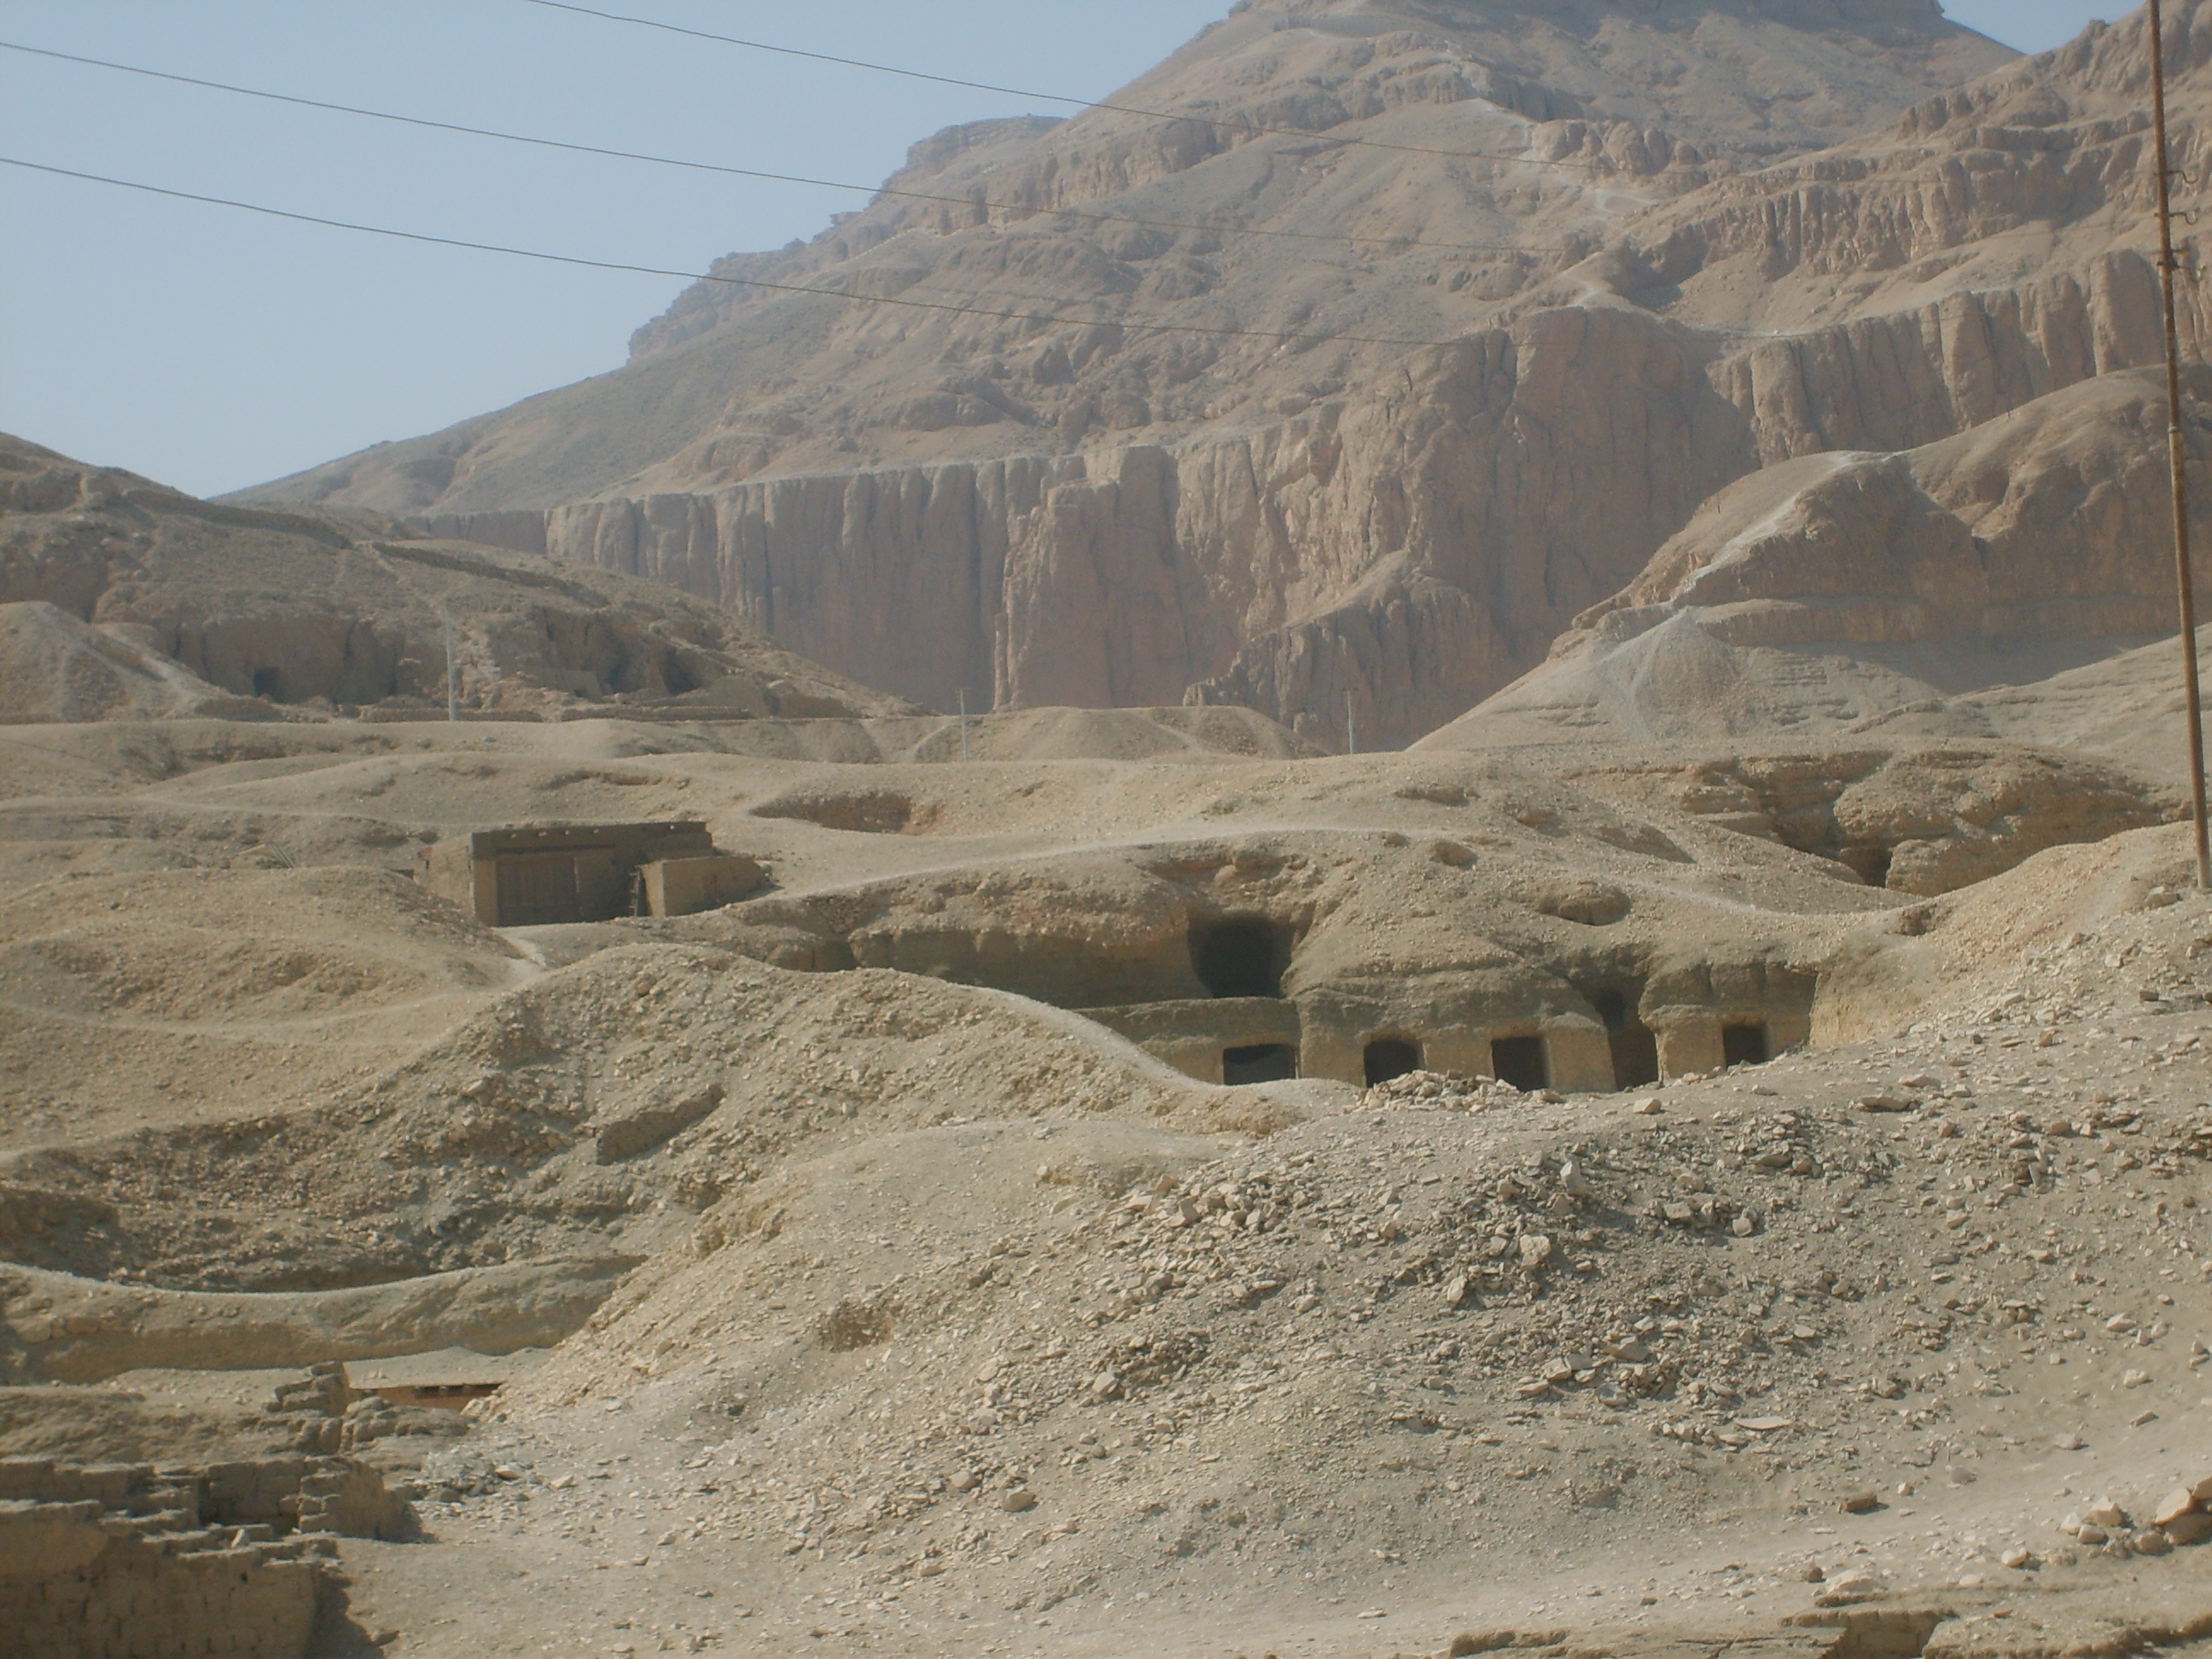 Tombs of the Nobles Luxor, Full Day Tour to the Best Royal Tombs and Temples in Luxor | Luxor ...